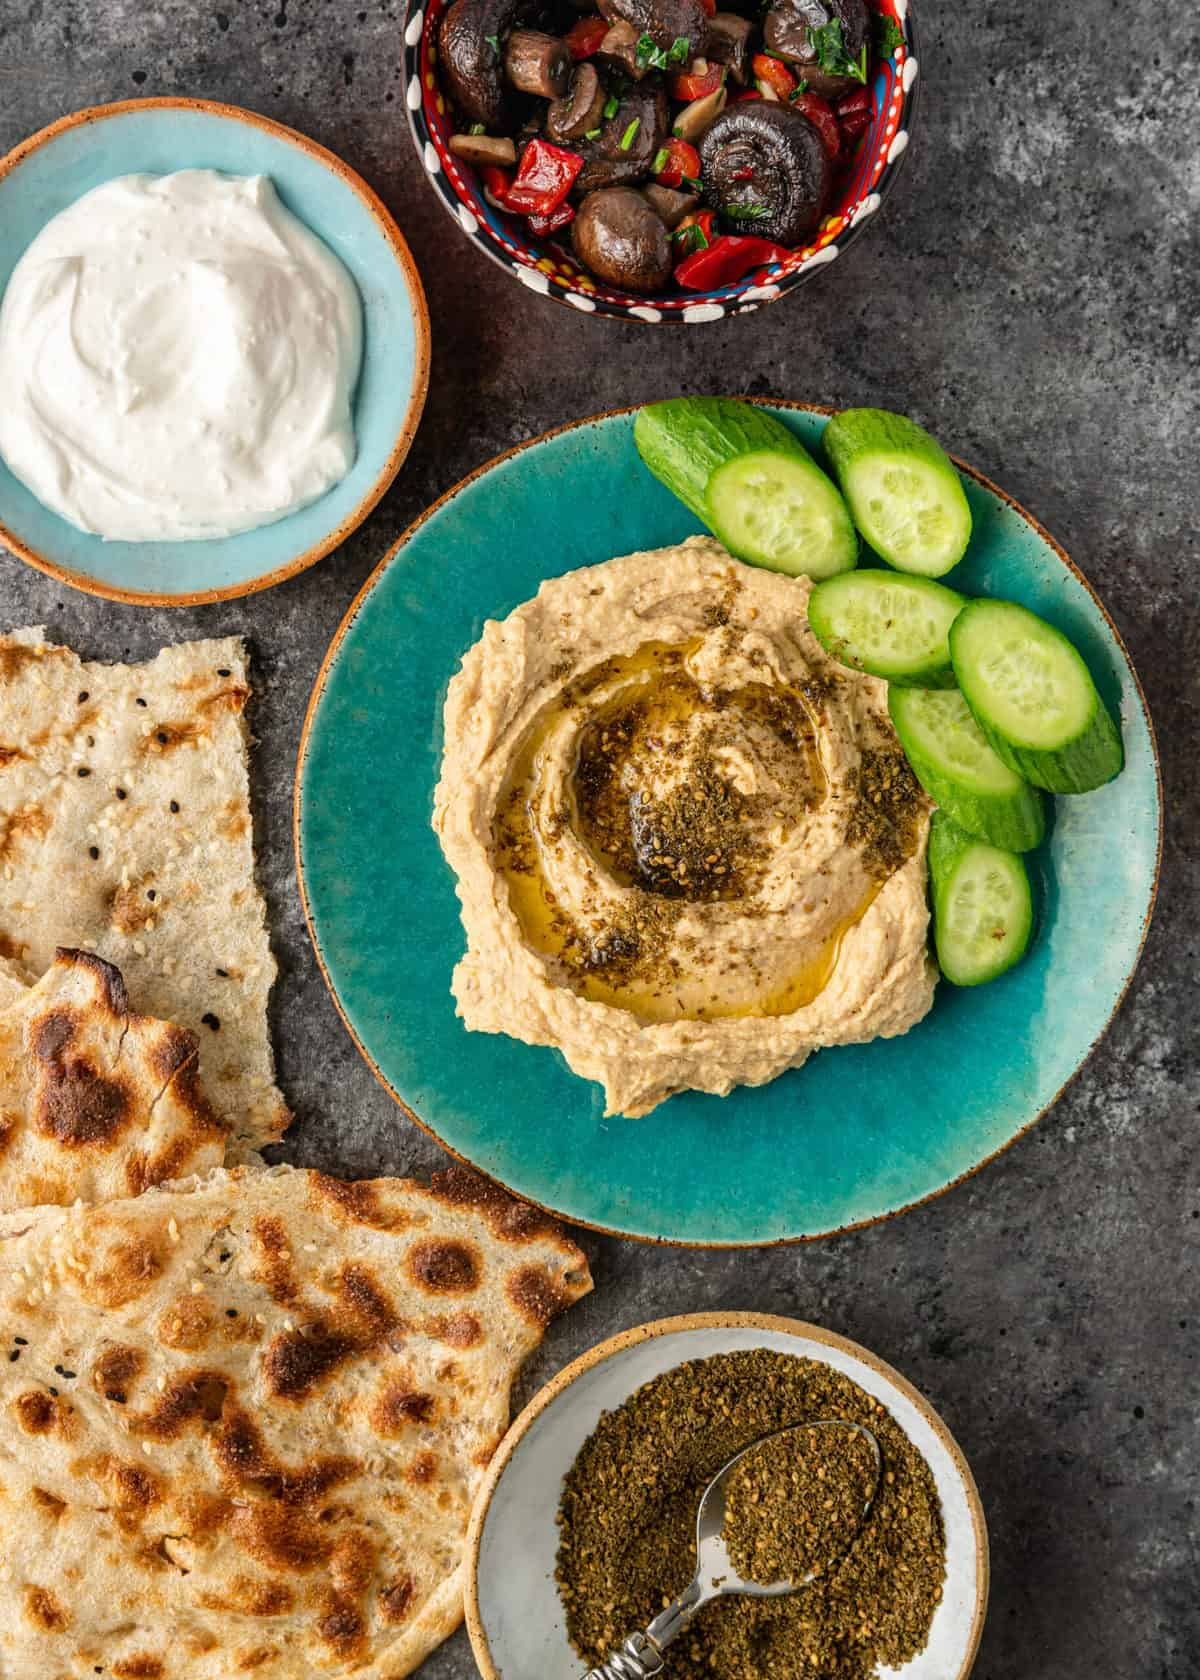 hummus with Lebanese za'tar spice blend on top and sliced cucumbers for dipping